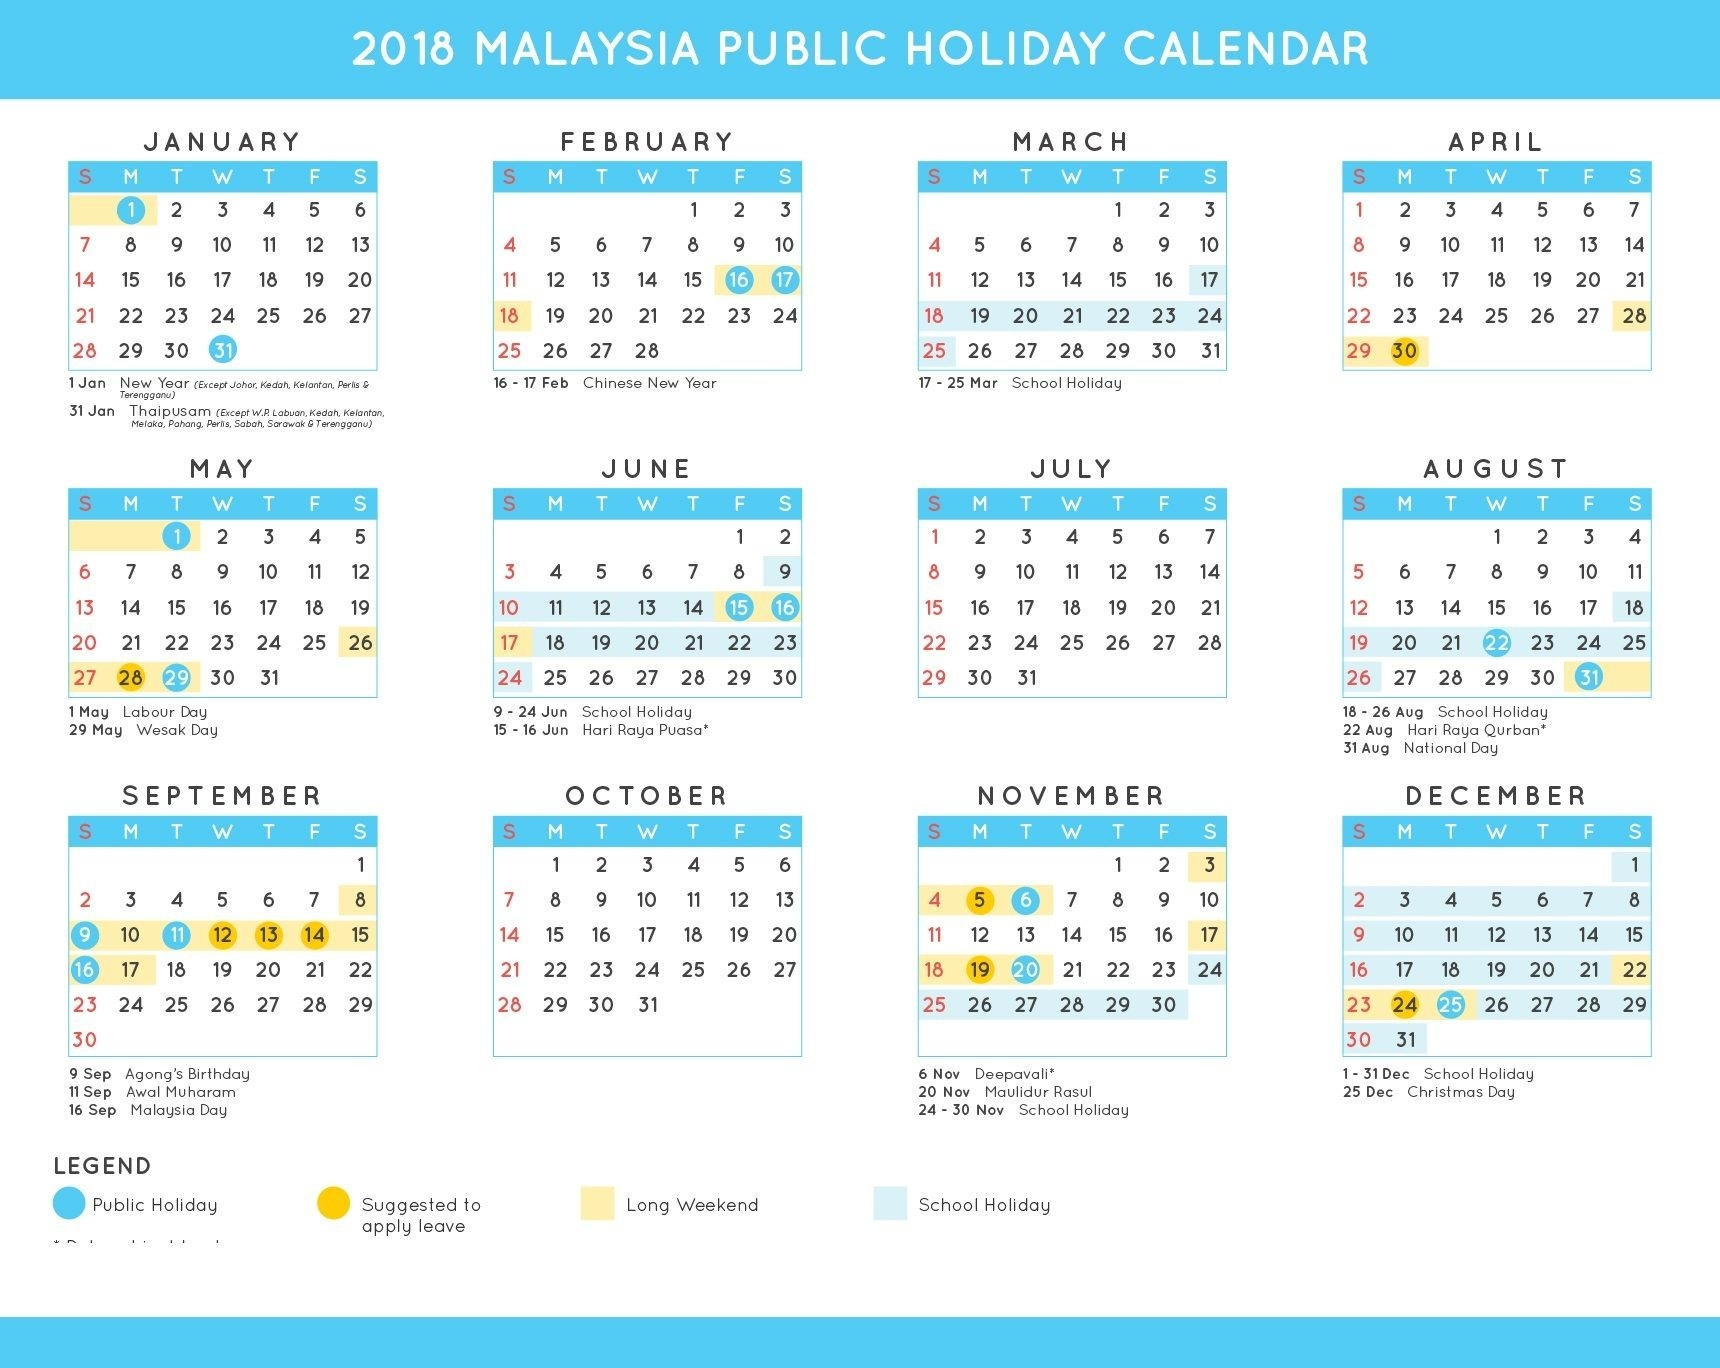 2019 Federal Holiday Calendar Download | School Holiday-Calender With Public Holidays